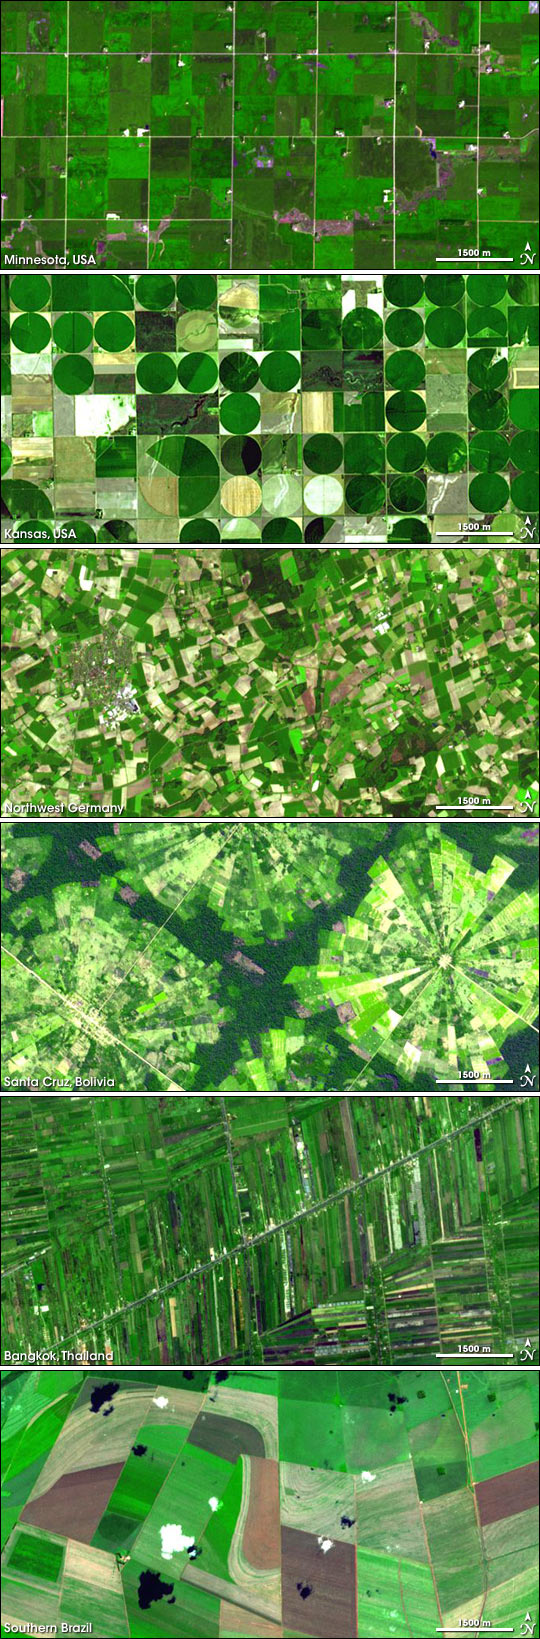 Agricultural Patterns